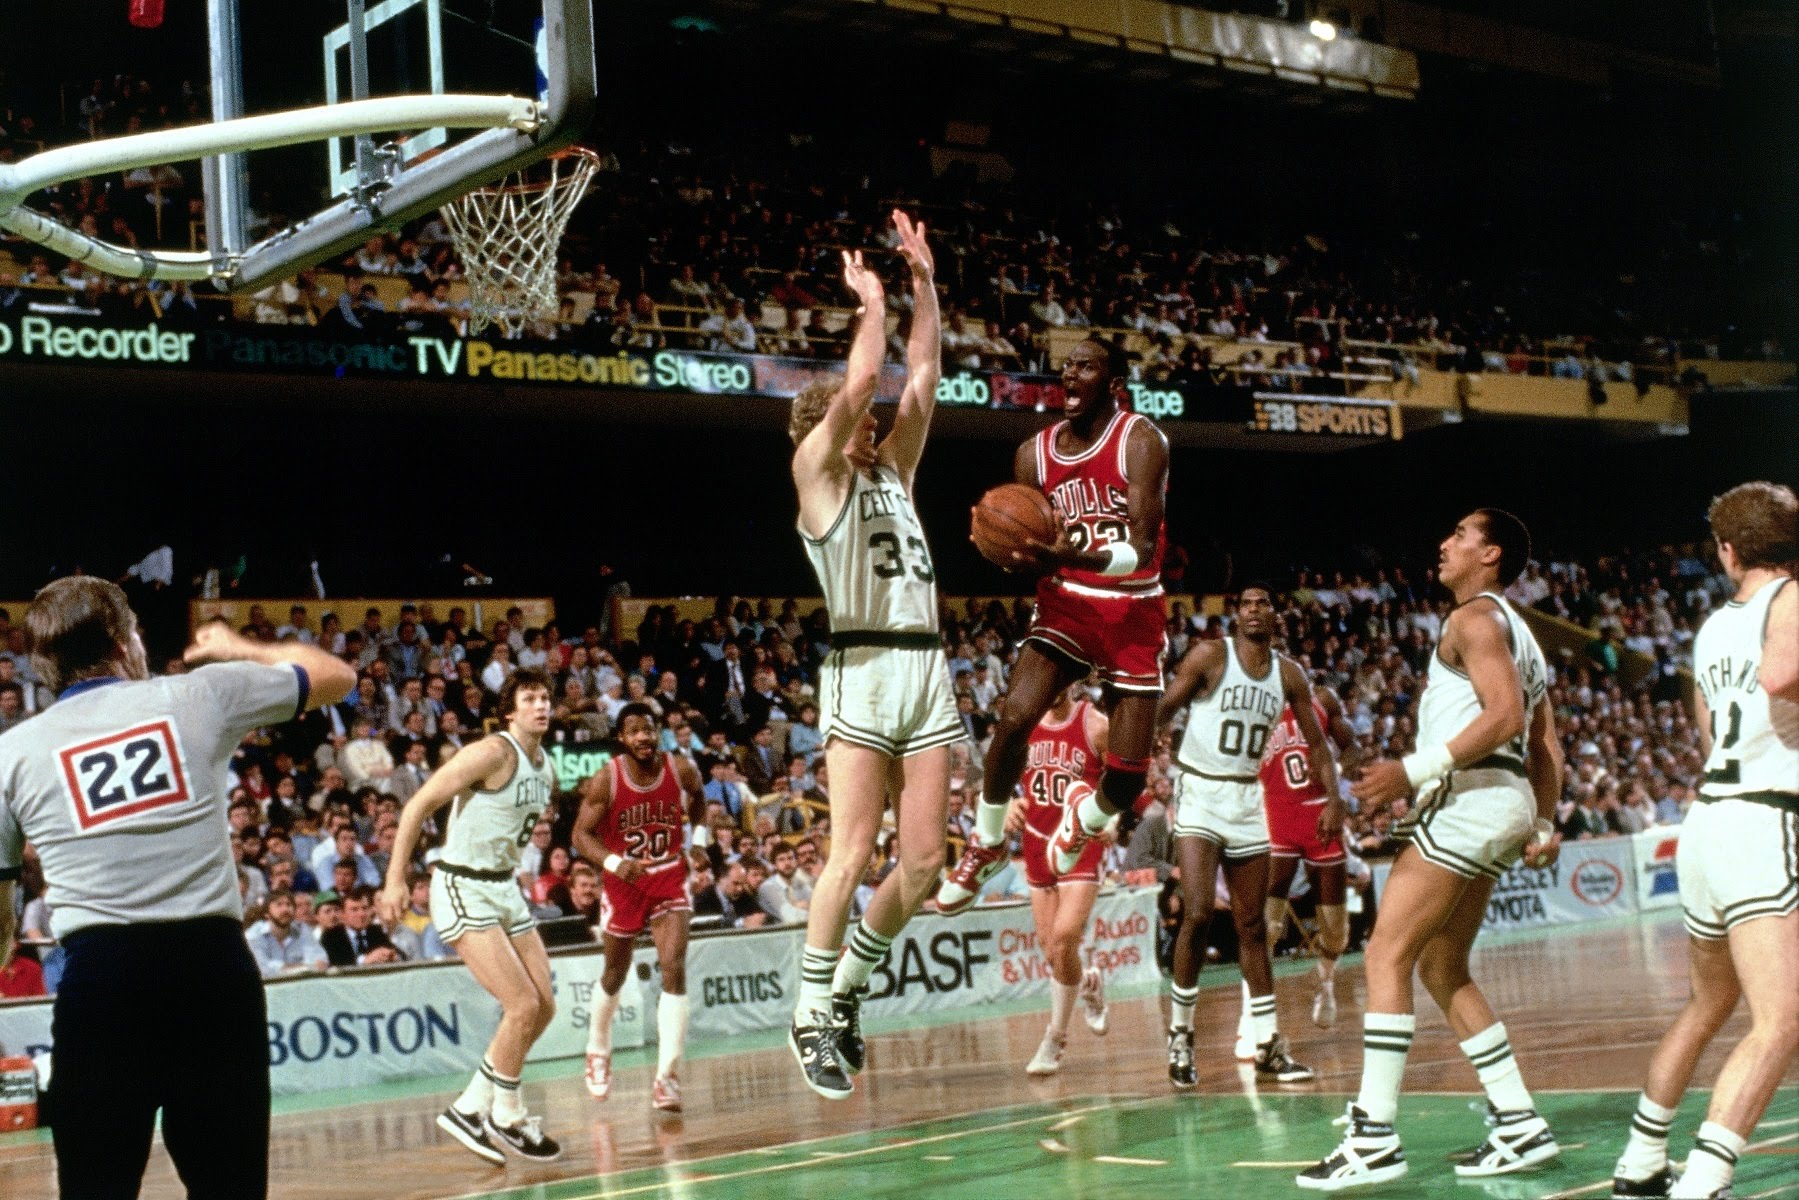 Throwback Thursday: Michael Jordan drops 63 points on the Boston Celtics in 1986 NBA Playoffs